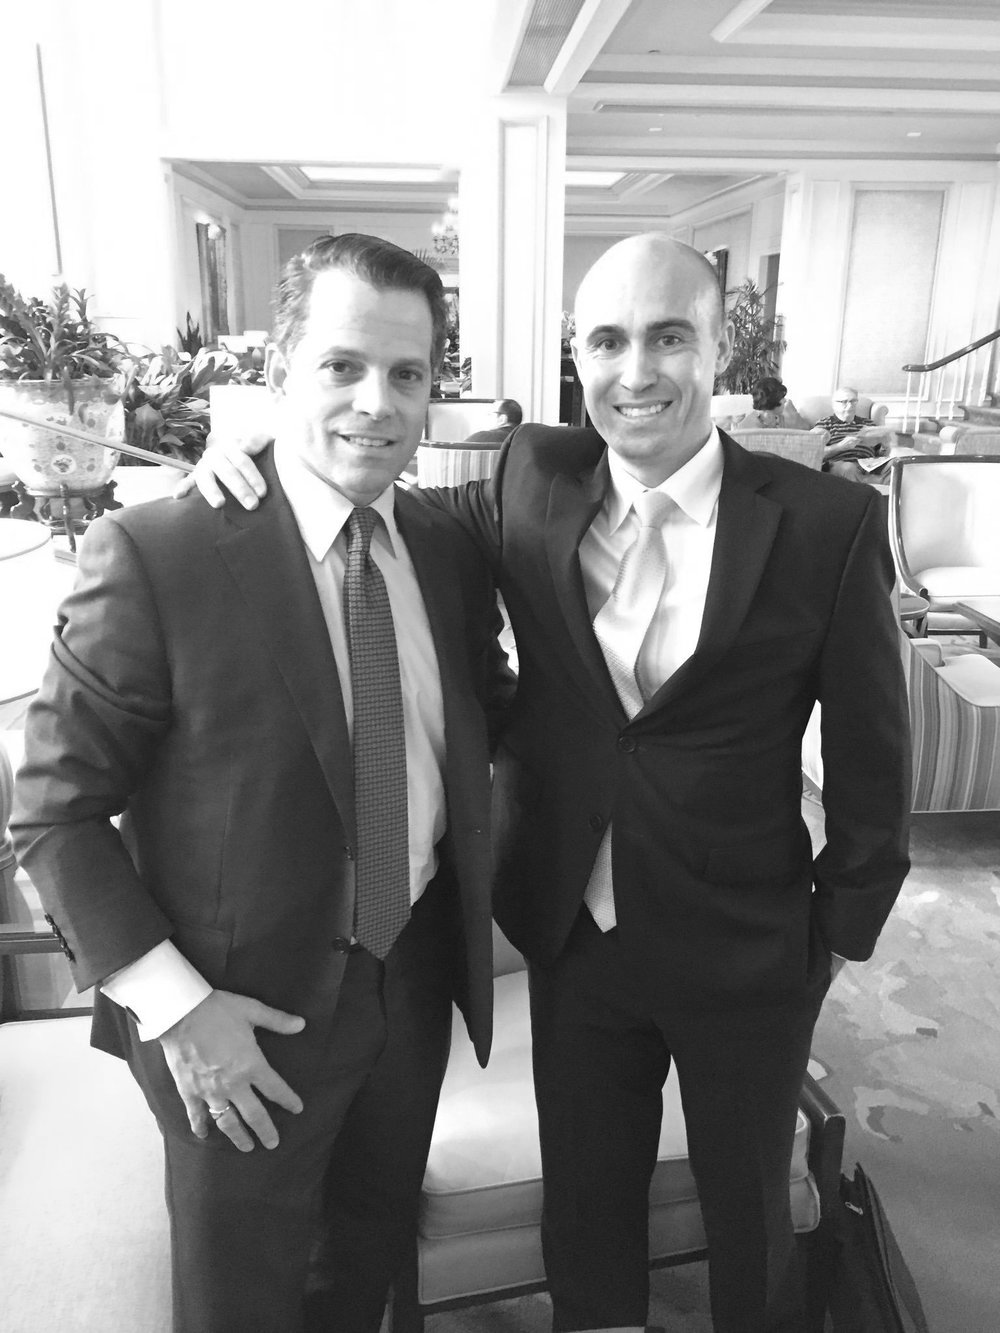 Anthony Scaramucci, Founder, SkyBridge Capital